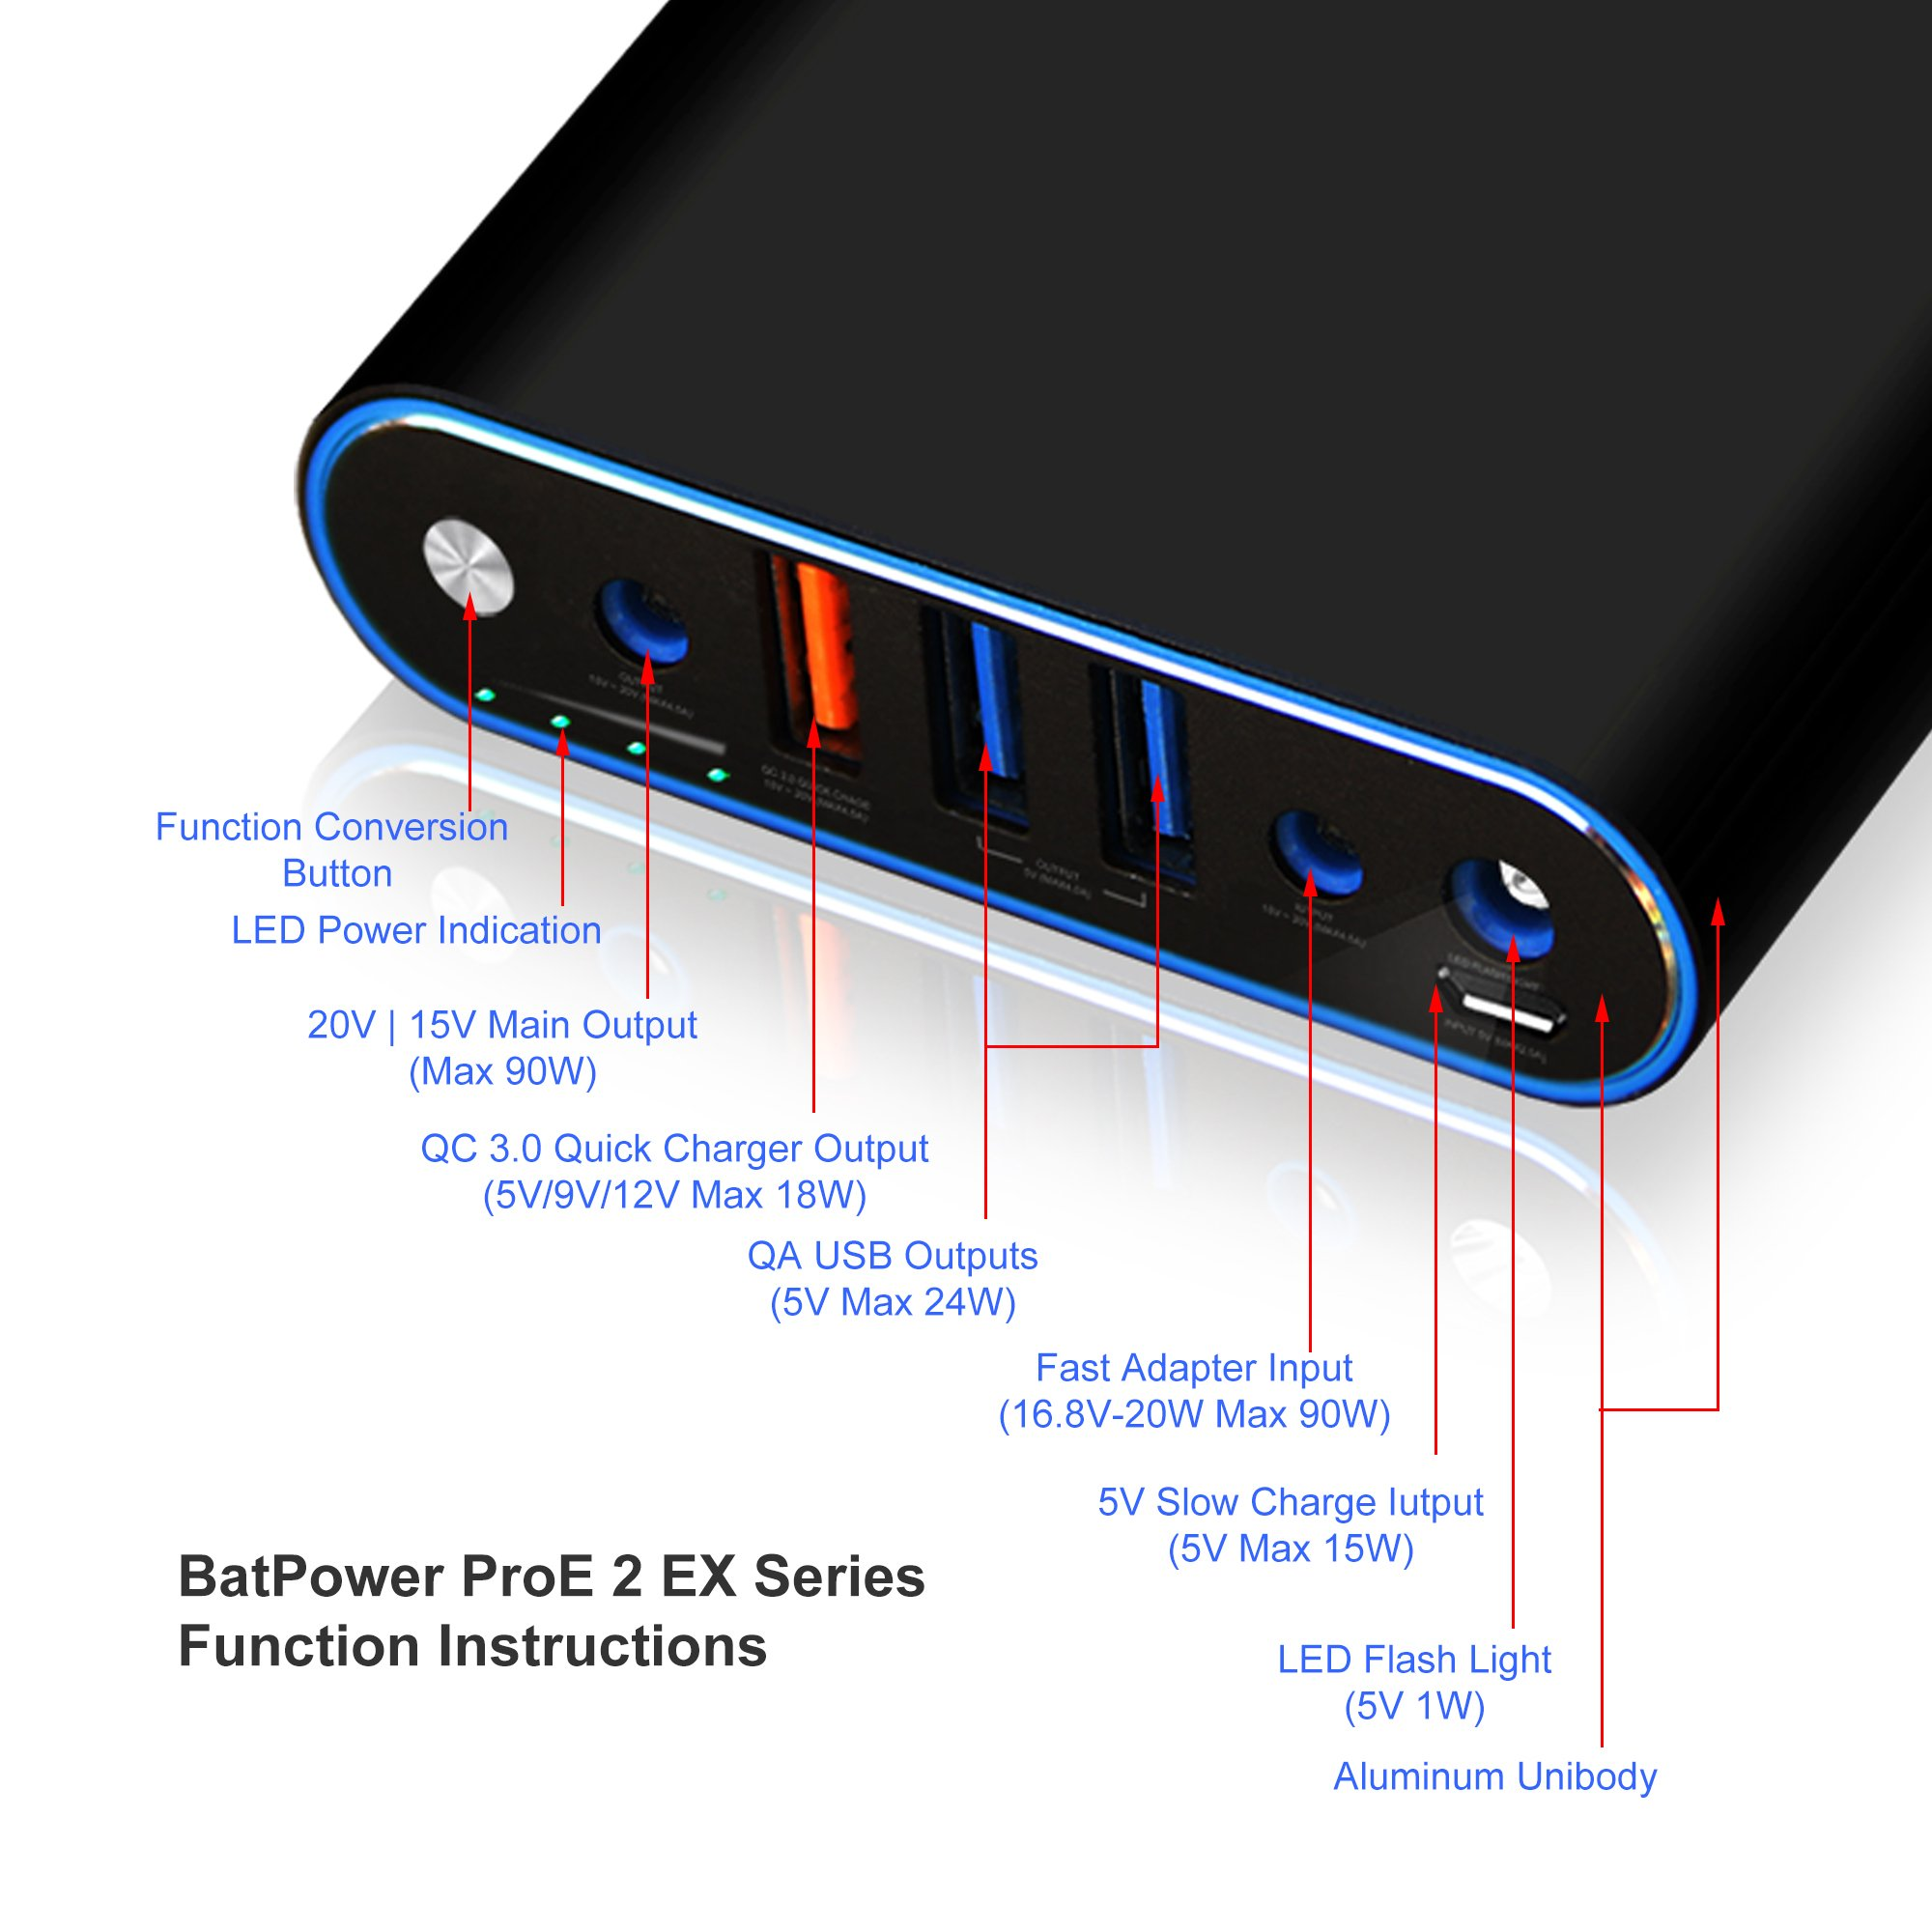 BatPower EX7H 98Wh Laptop External Battery Power Bank for HP Pavilion Envy Spectre Split Slatebook Chromebook Streambook EliteBook Notebook(Circular Connector) USB QC Fast Charging tablet smartphone by BatPower (Image #3)